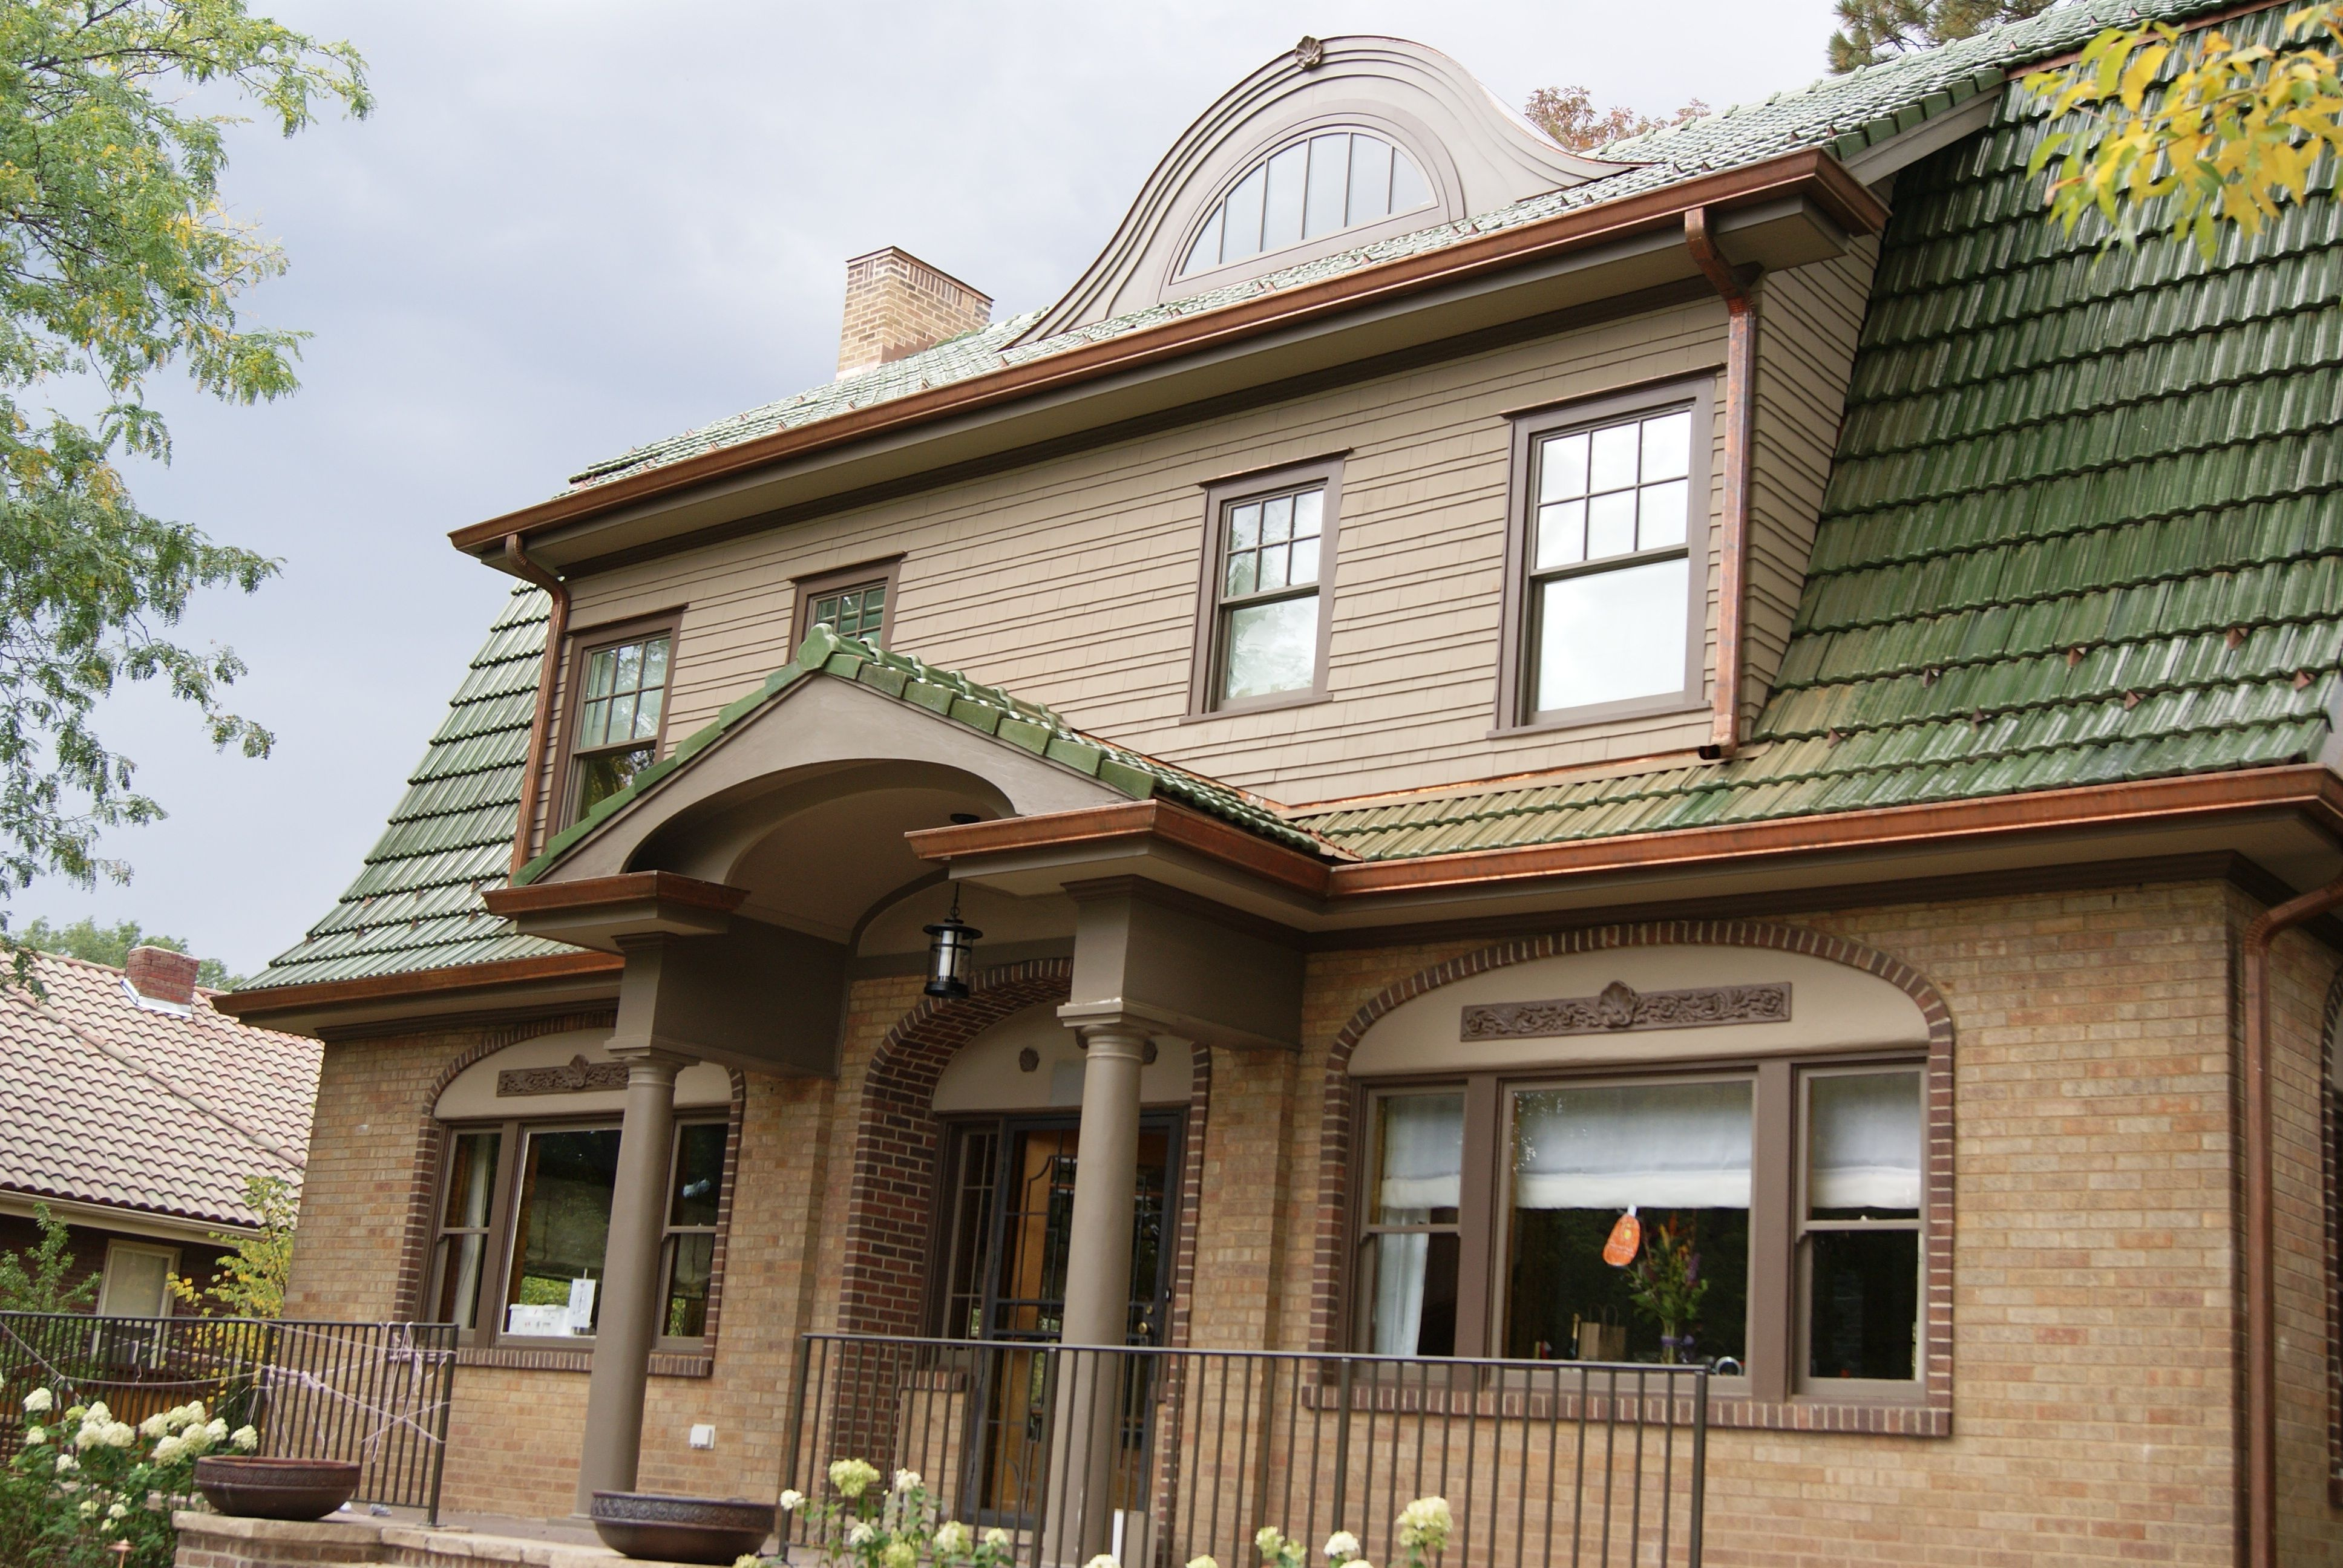 Brookfield green Ludowici French tile roof. Copper barrel ...